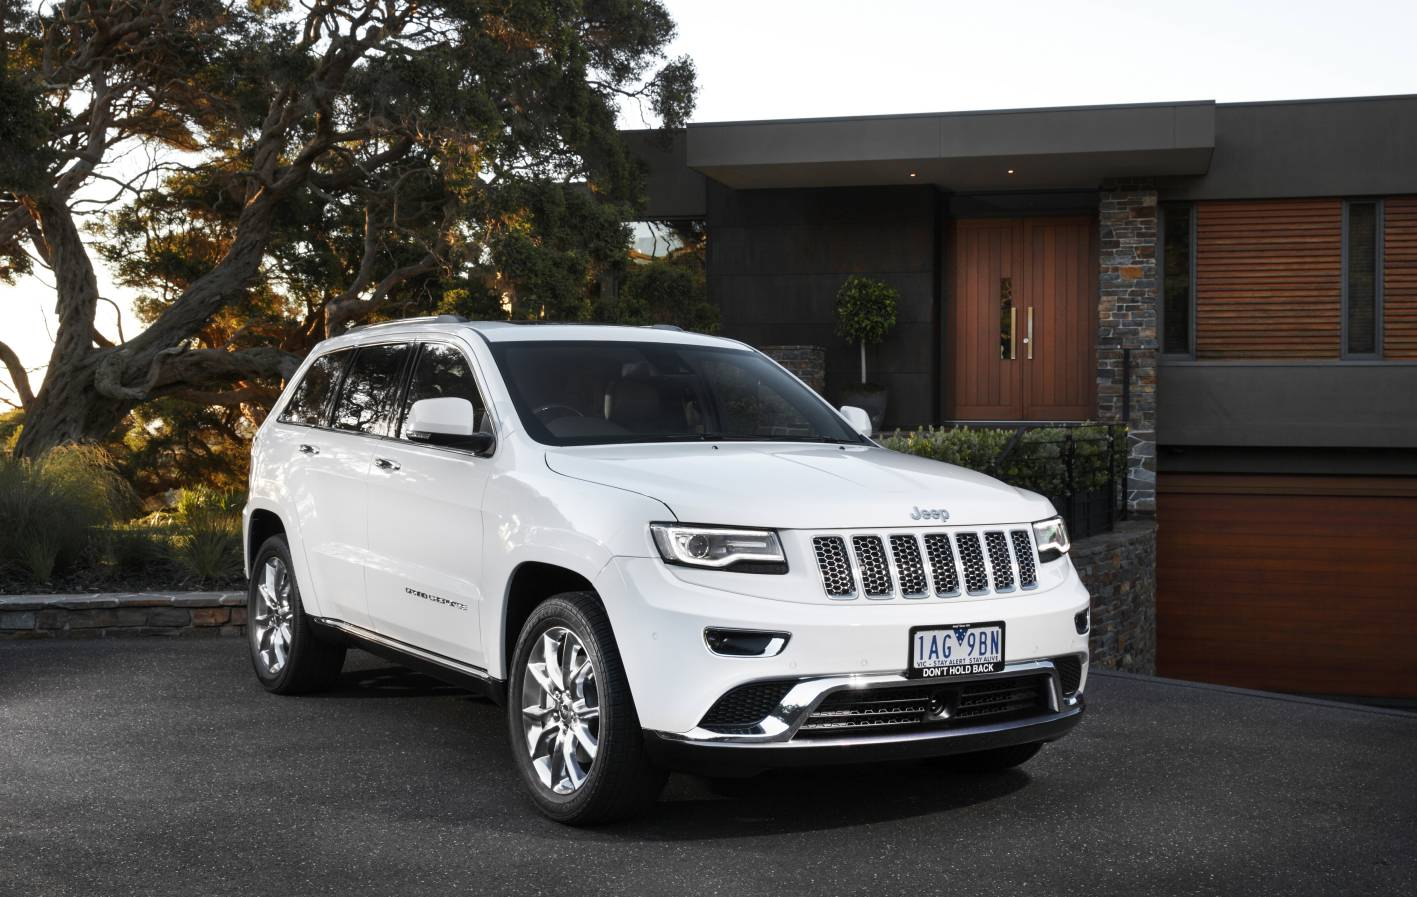 review jeep grand cherokee summit review and road test. Black Bedroom Furniture Sets. Home Design Ideas